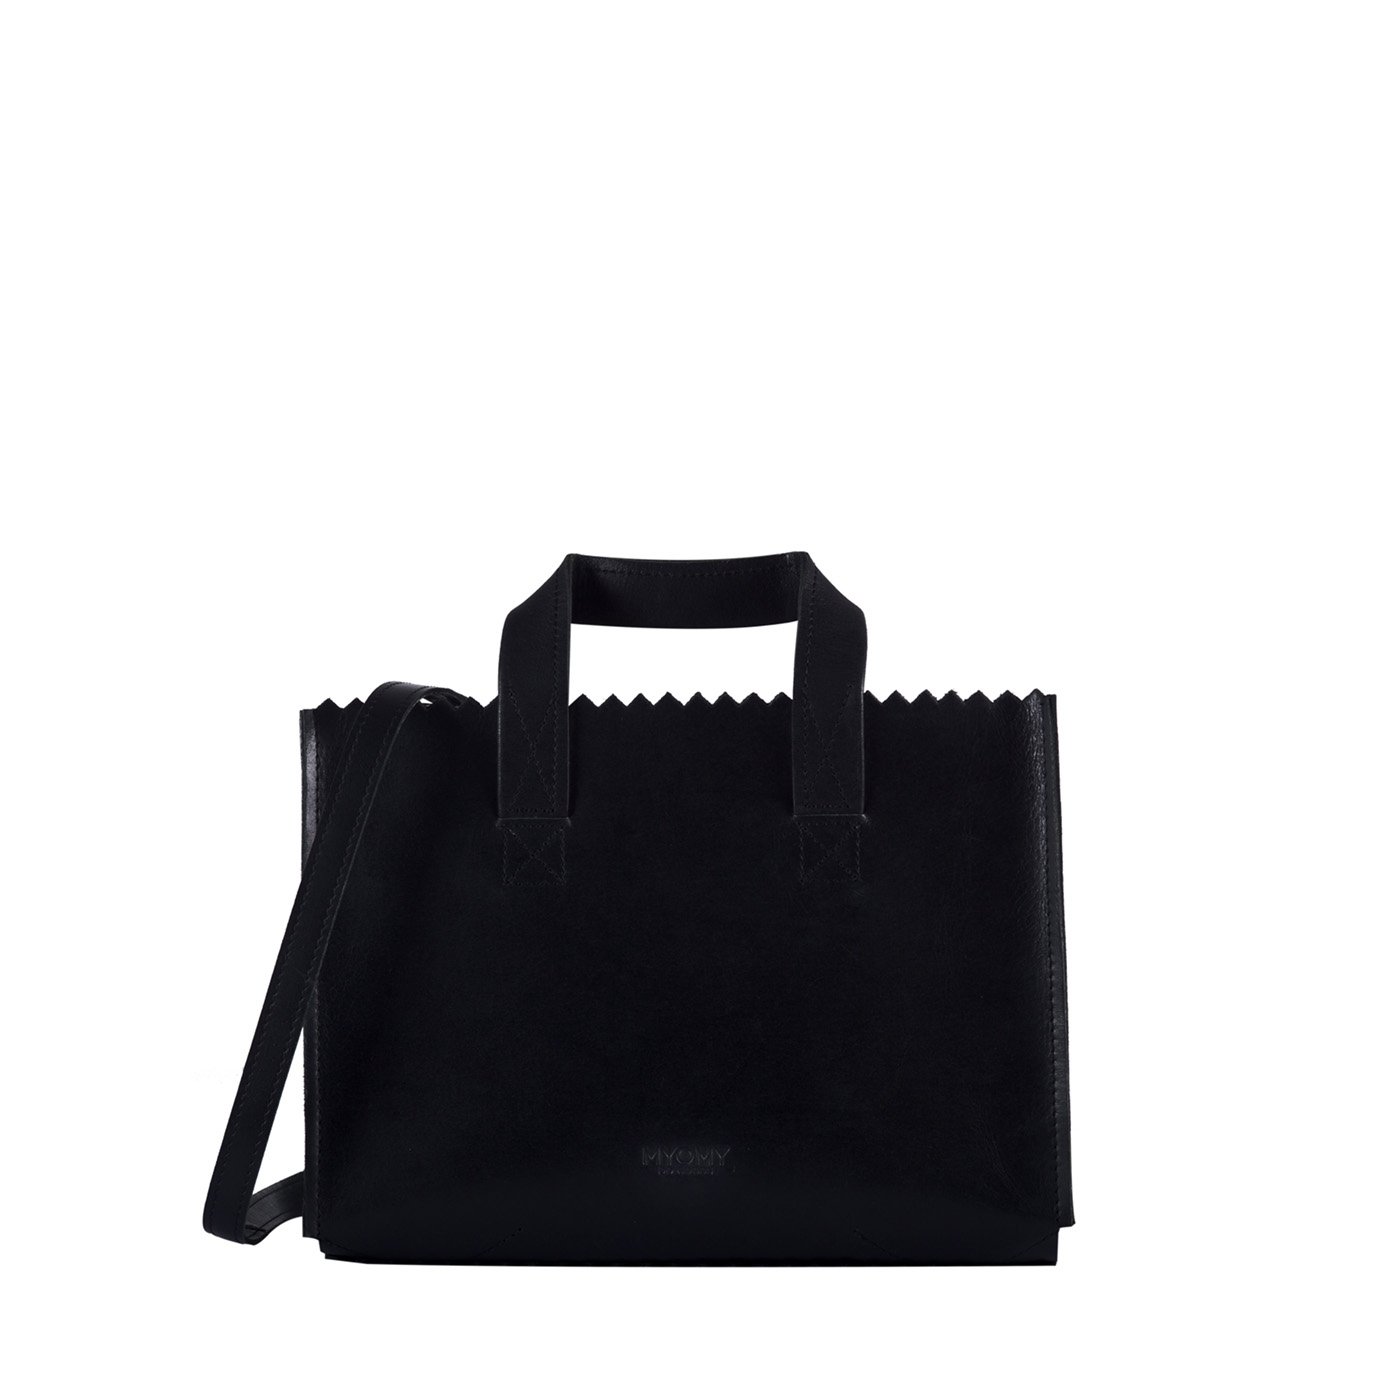 MY PAPER BAG Mini handbag cross-body - hunter waxy black